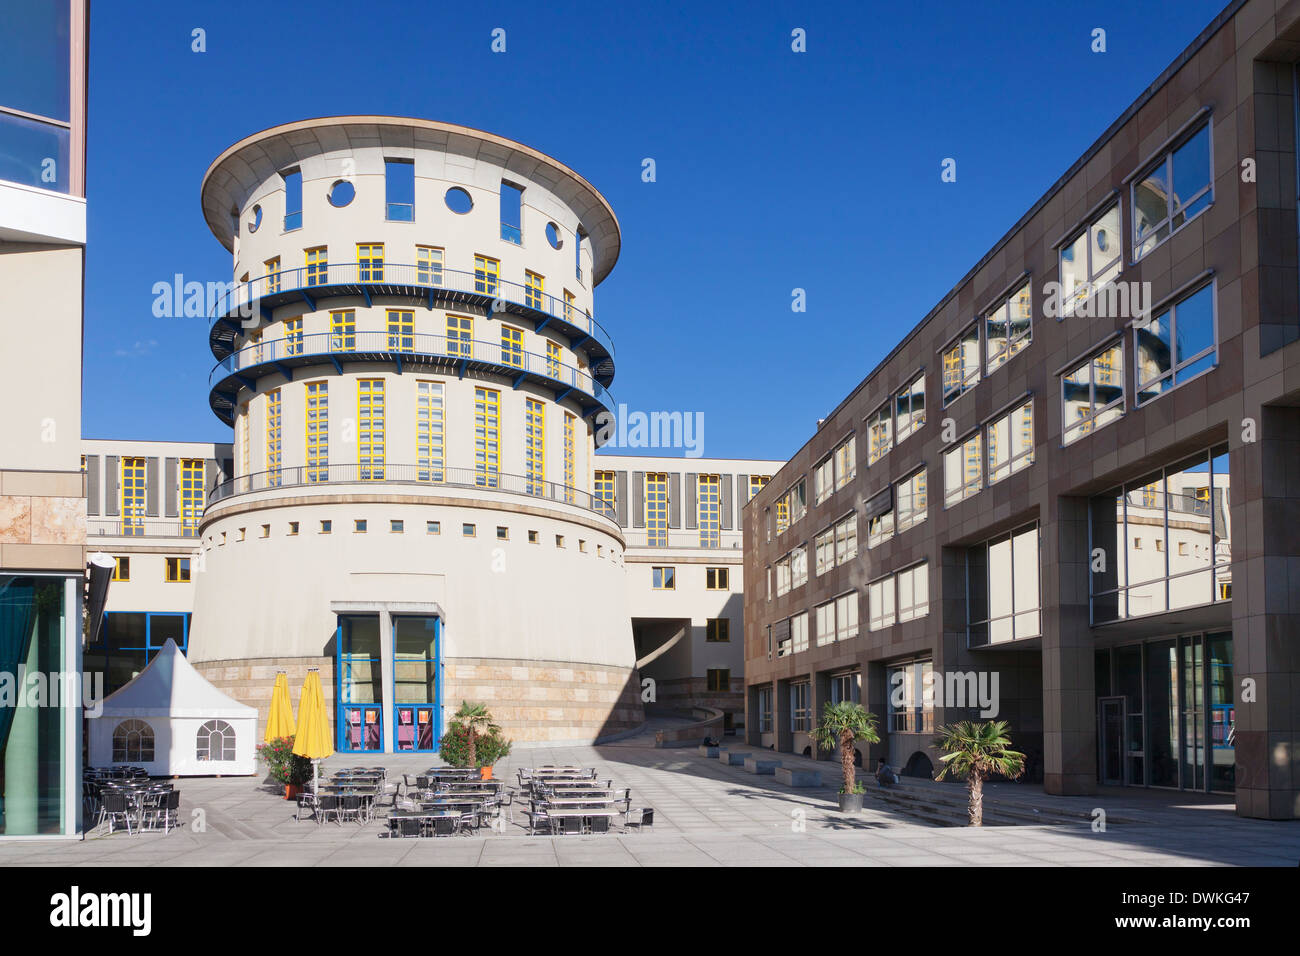 State University for music and visual arts, architect James Stirling, Stuttgart, Baden Wurttemberg, Germany, Europe - Stock Image